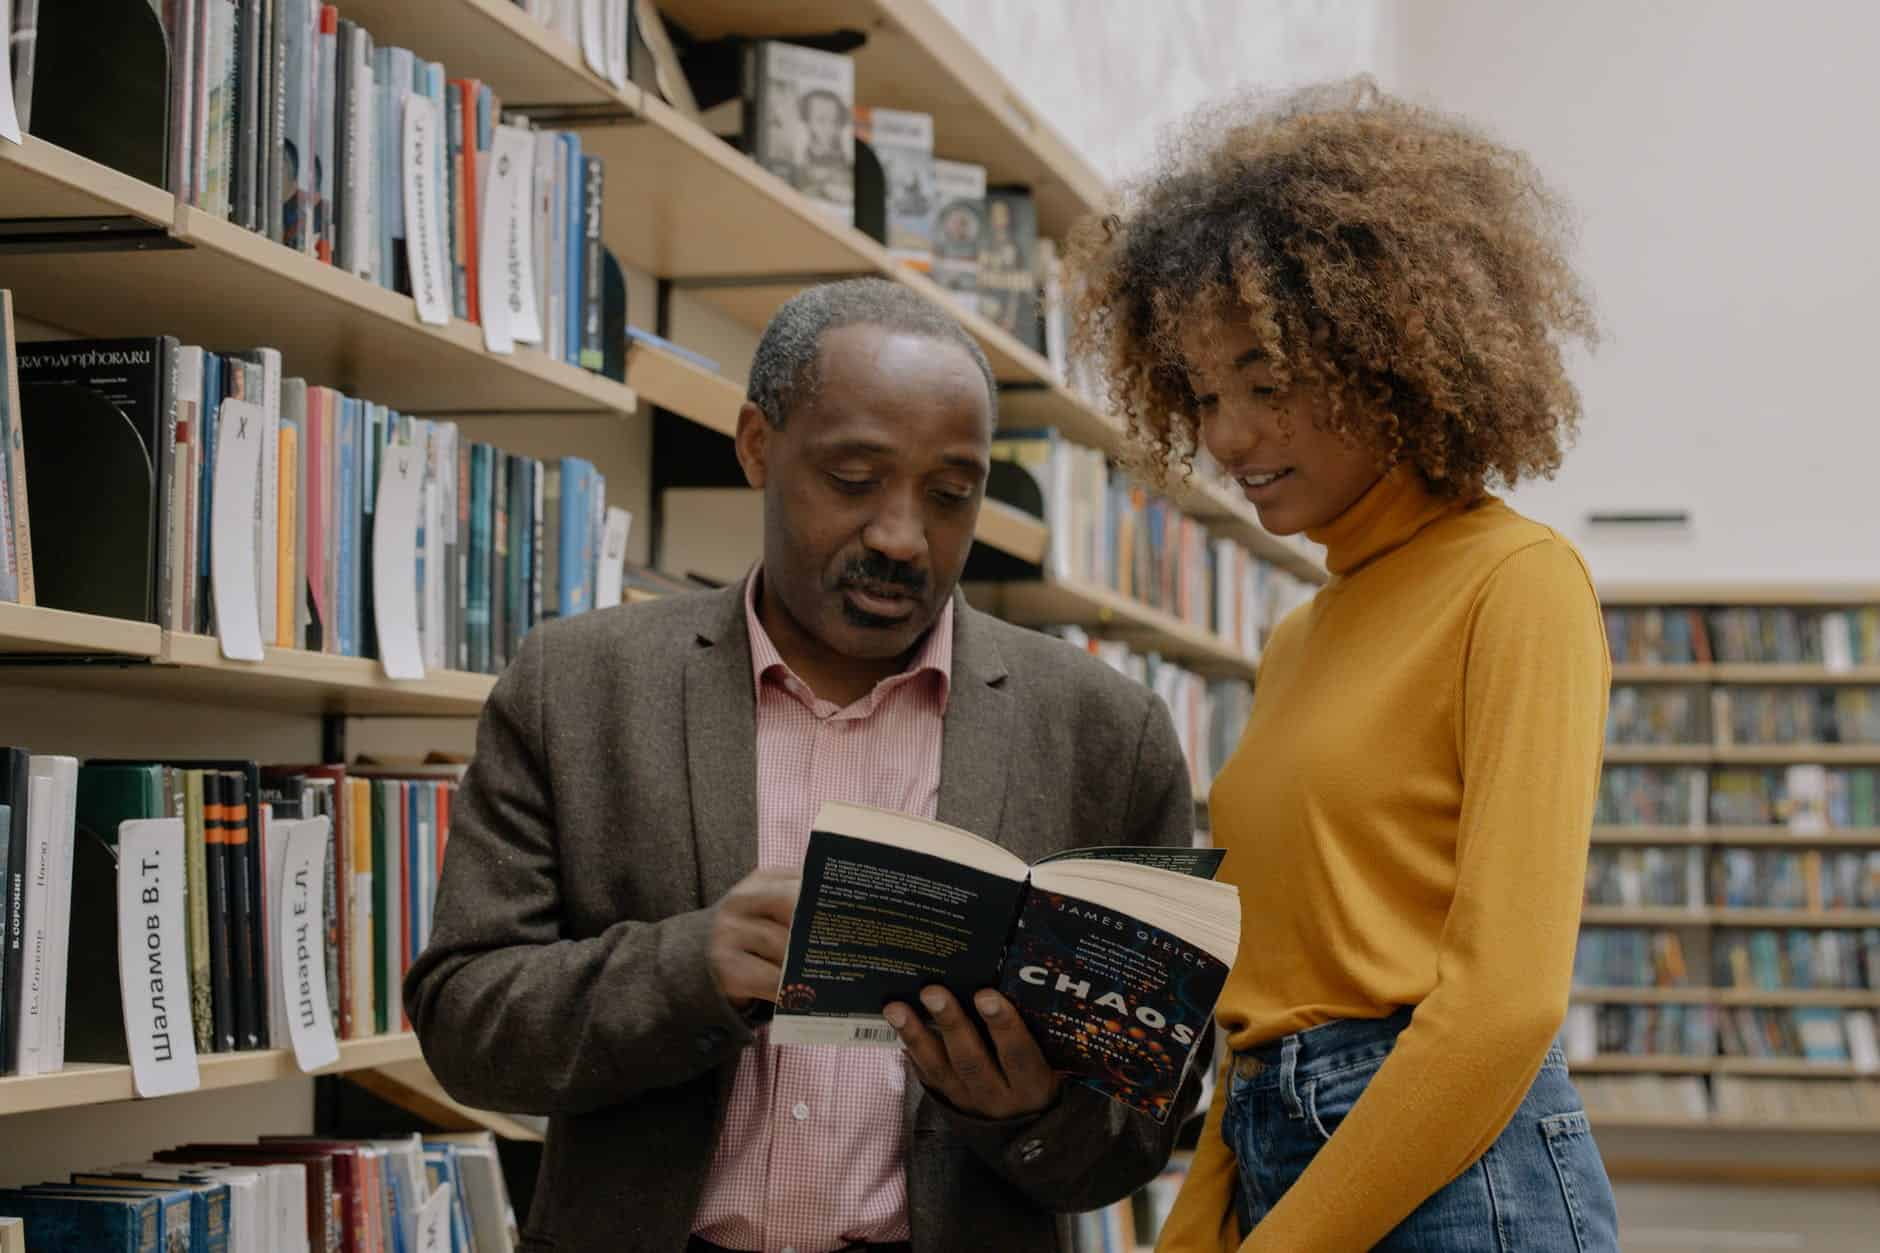 man in yellow sweater holding book beside woman in brown sweater